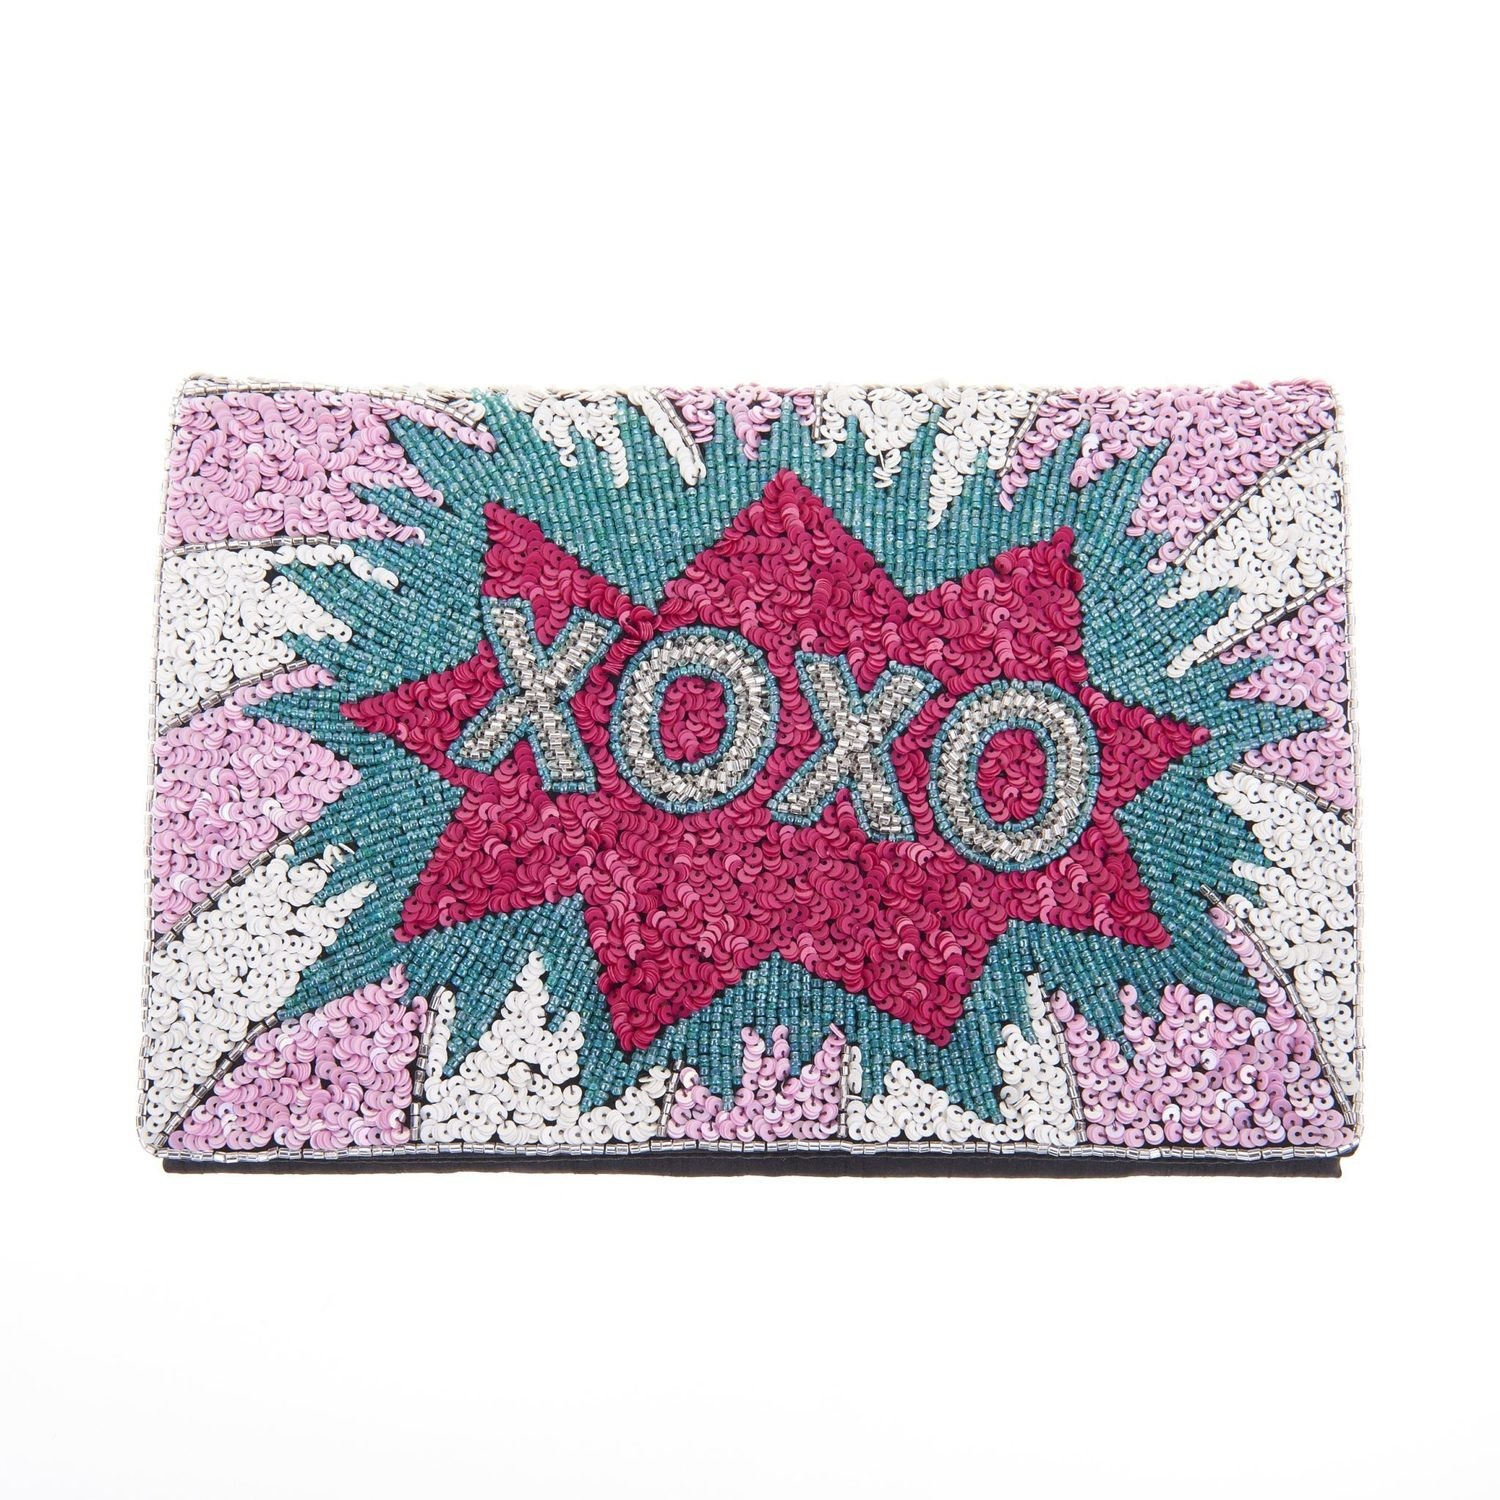 XOXO Clutch From St Xavier